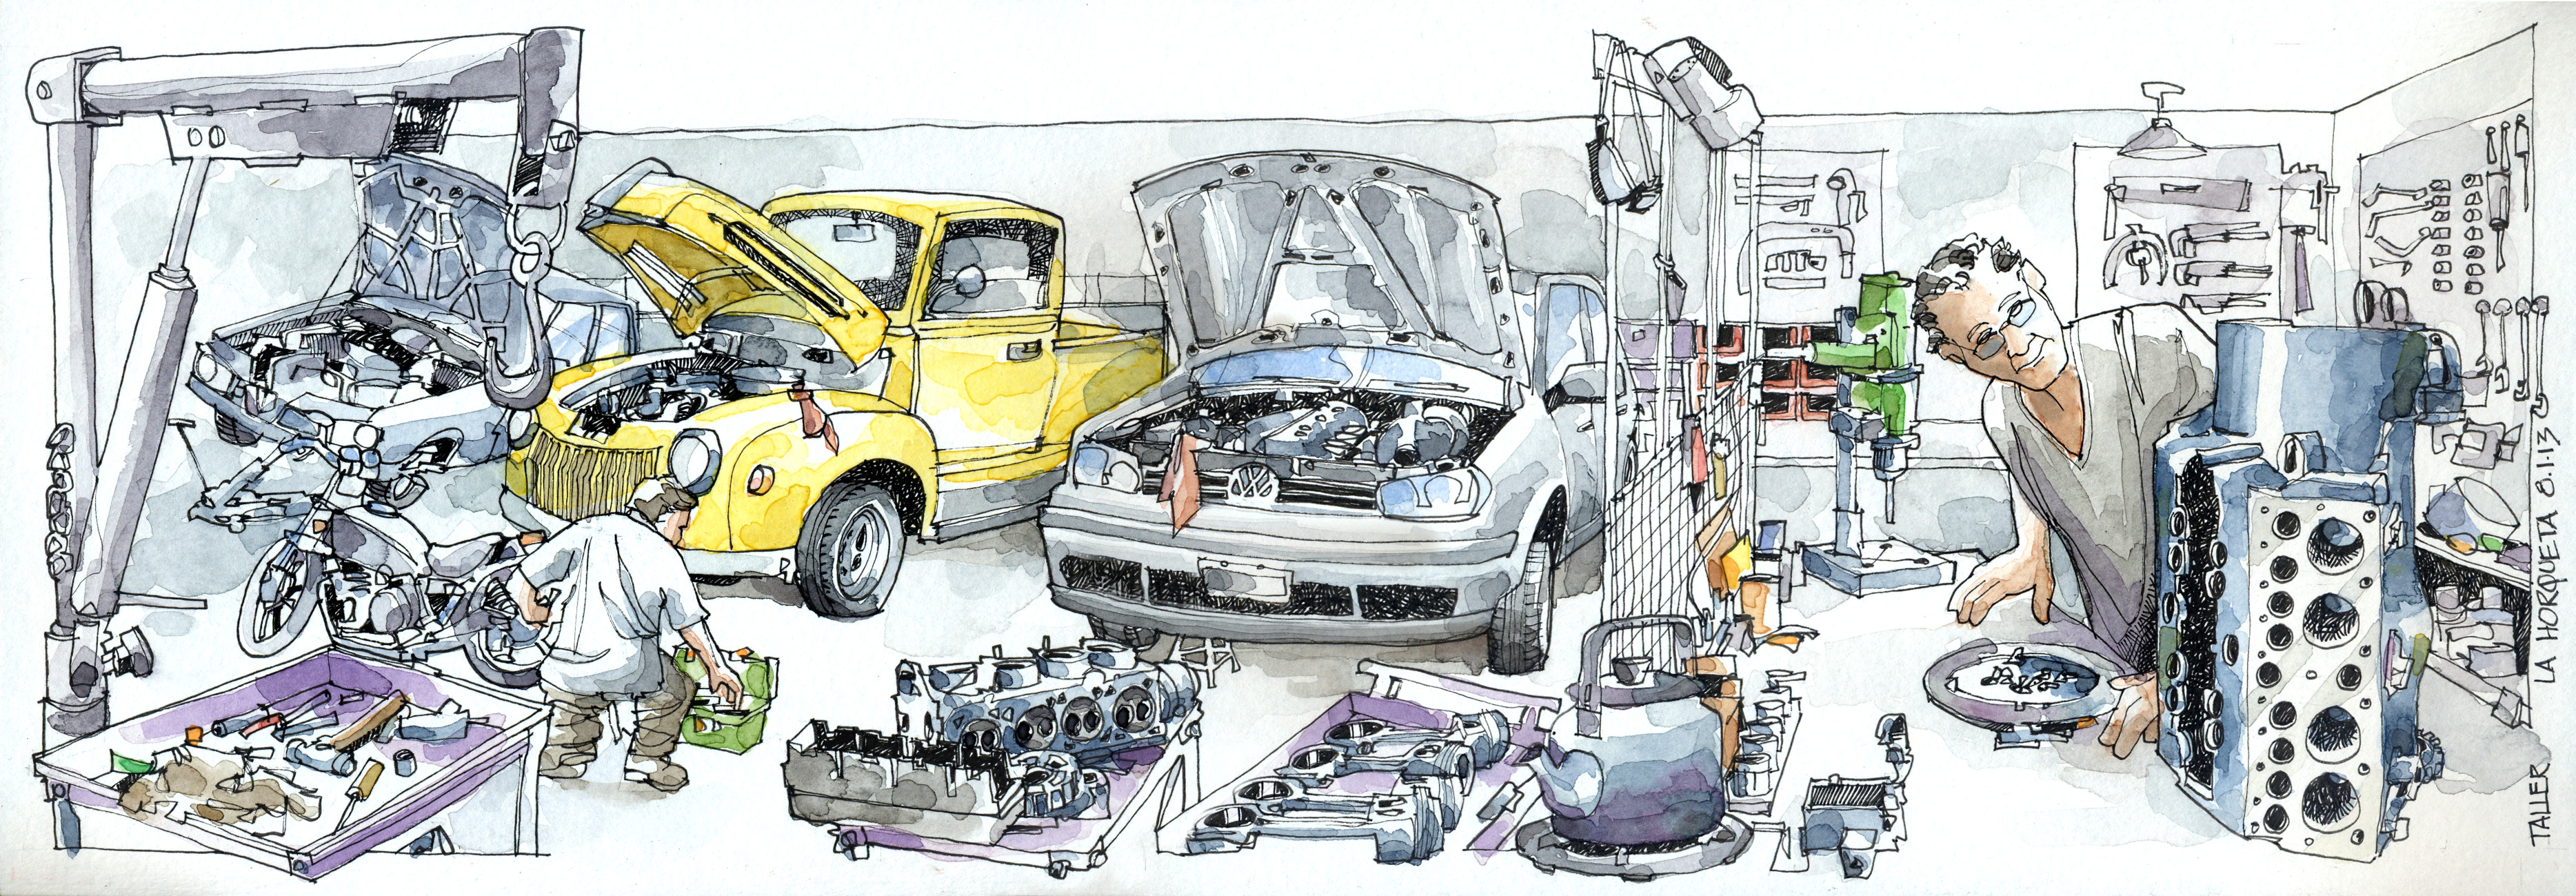 Car Repair Drawing at GetDrawings.com | Free for personal use Car ...